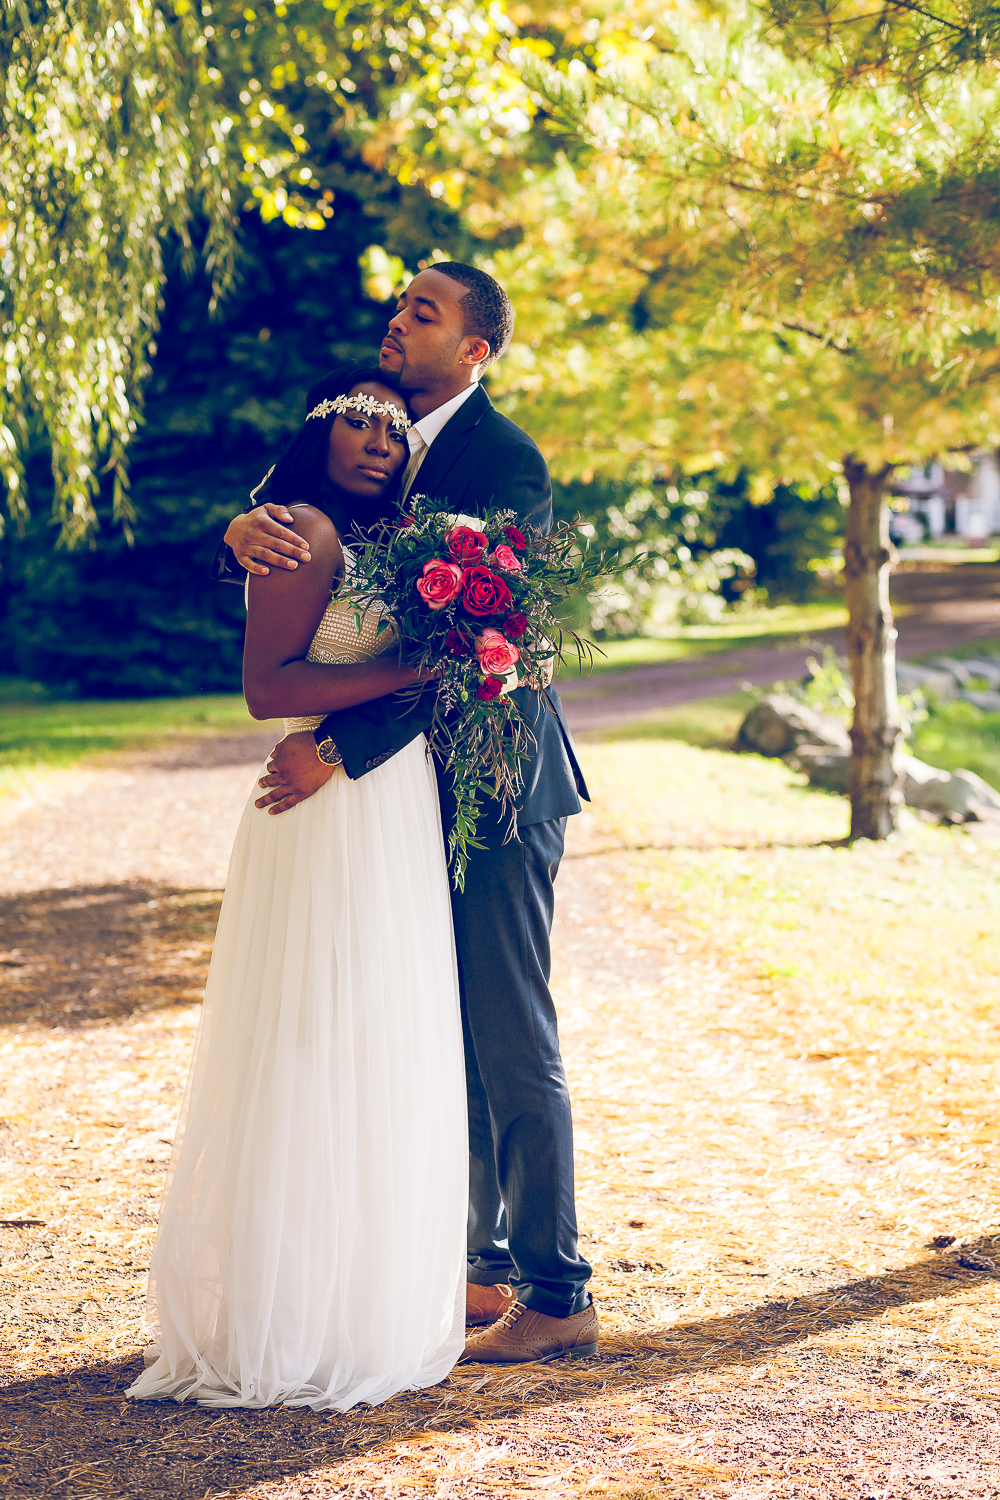 Nicole Mondestin Photography NYC Photographer-112.jpg